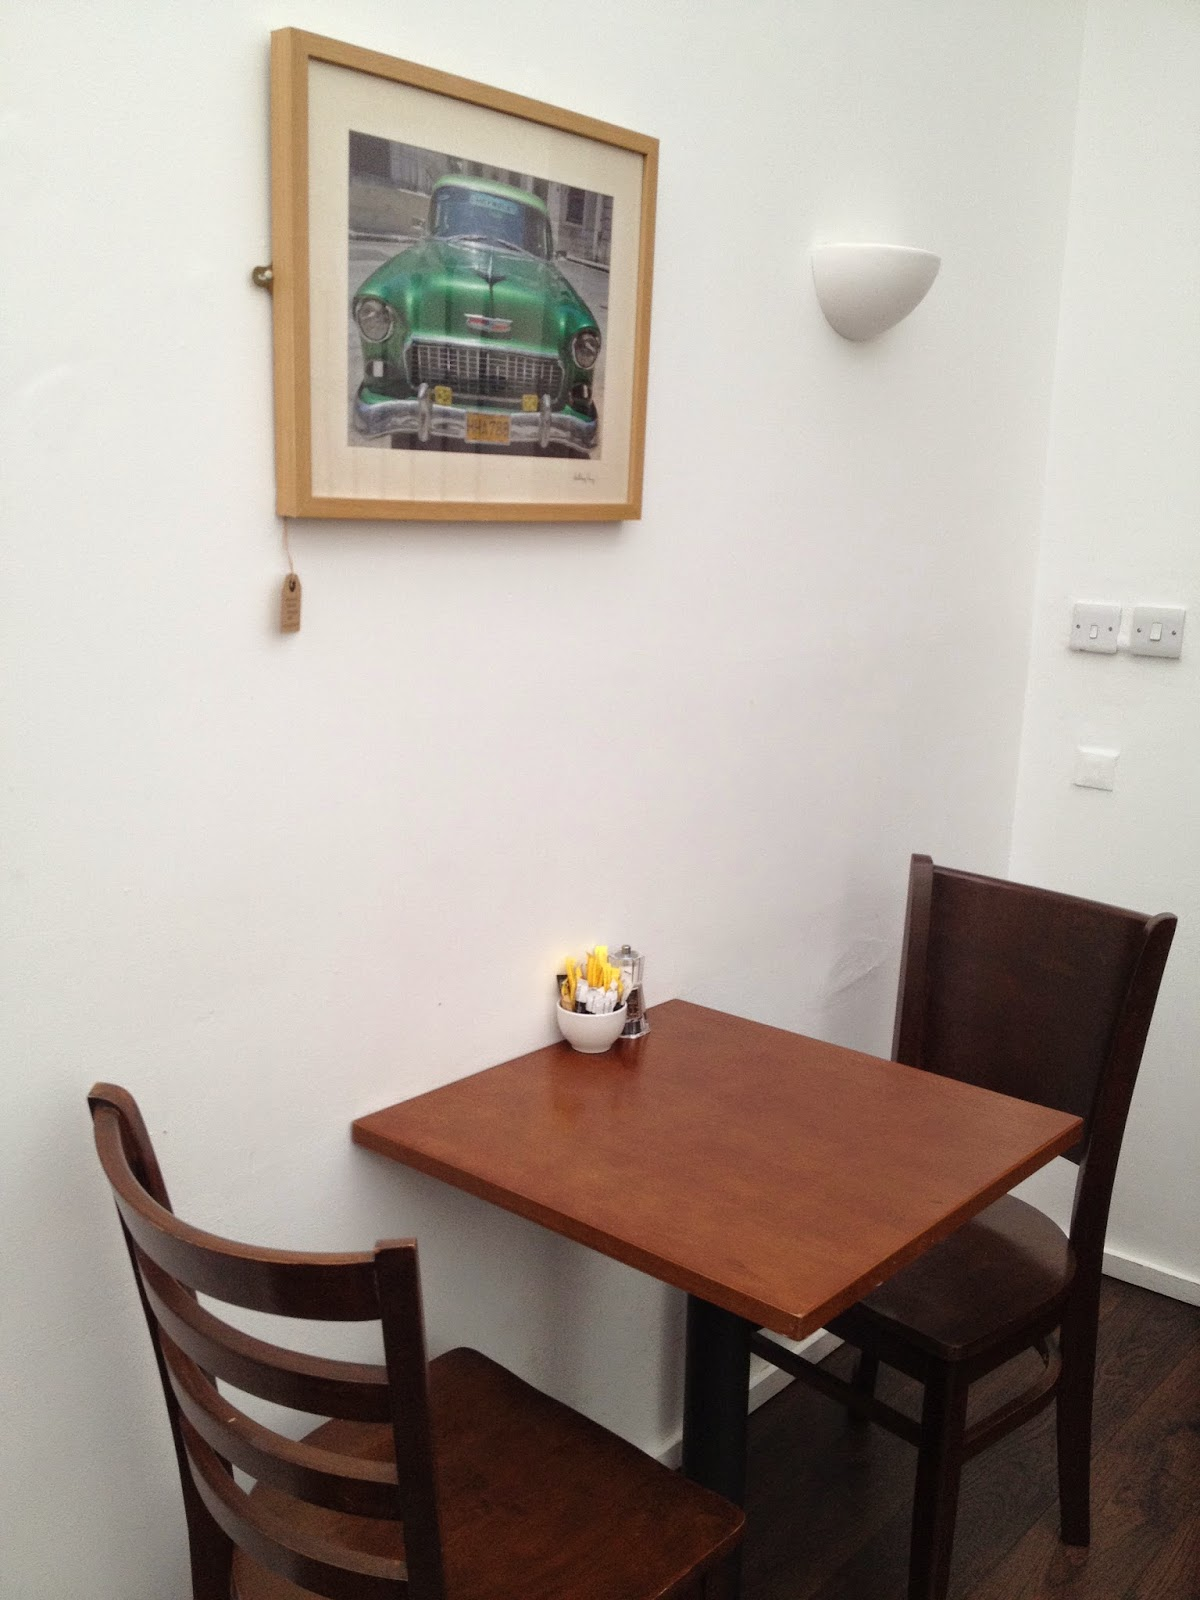 The Fry up Inspector: Expresso Cafe - Norwich